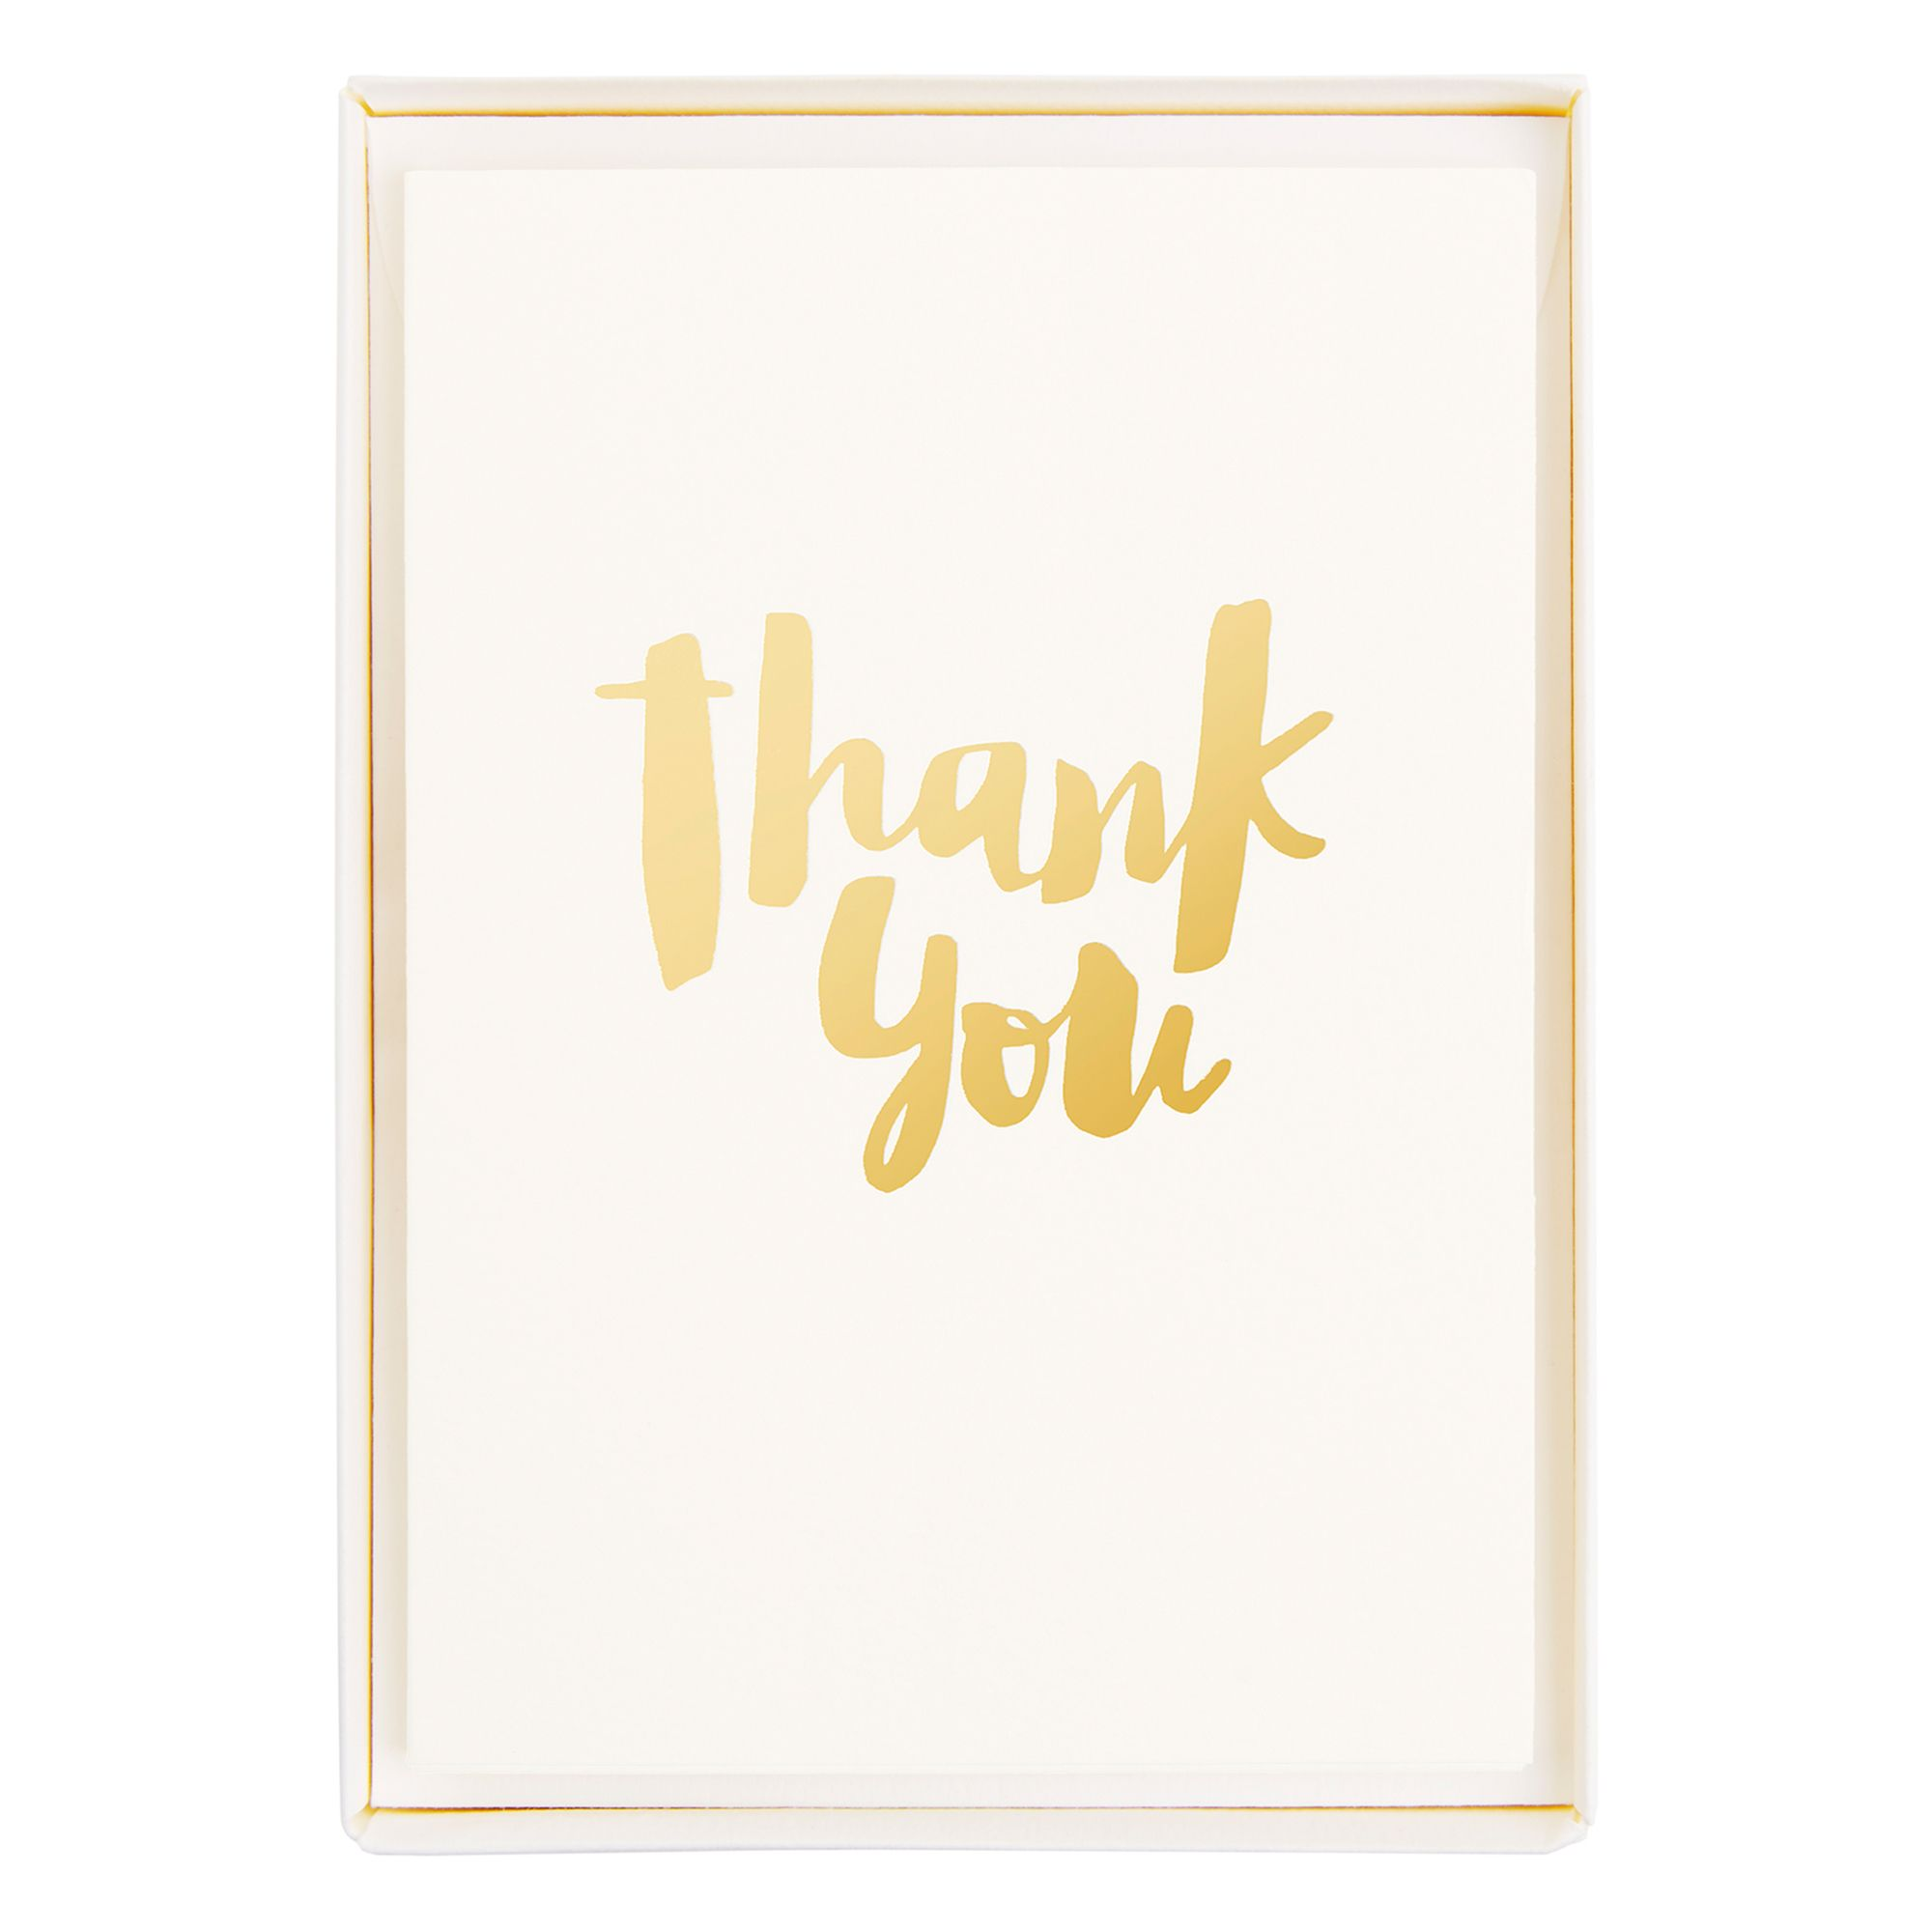 10 Awesome Thank You Card Nz Thank You Card Images Picture Thank You Cards Thank You Card Template